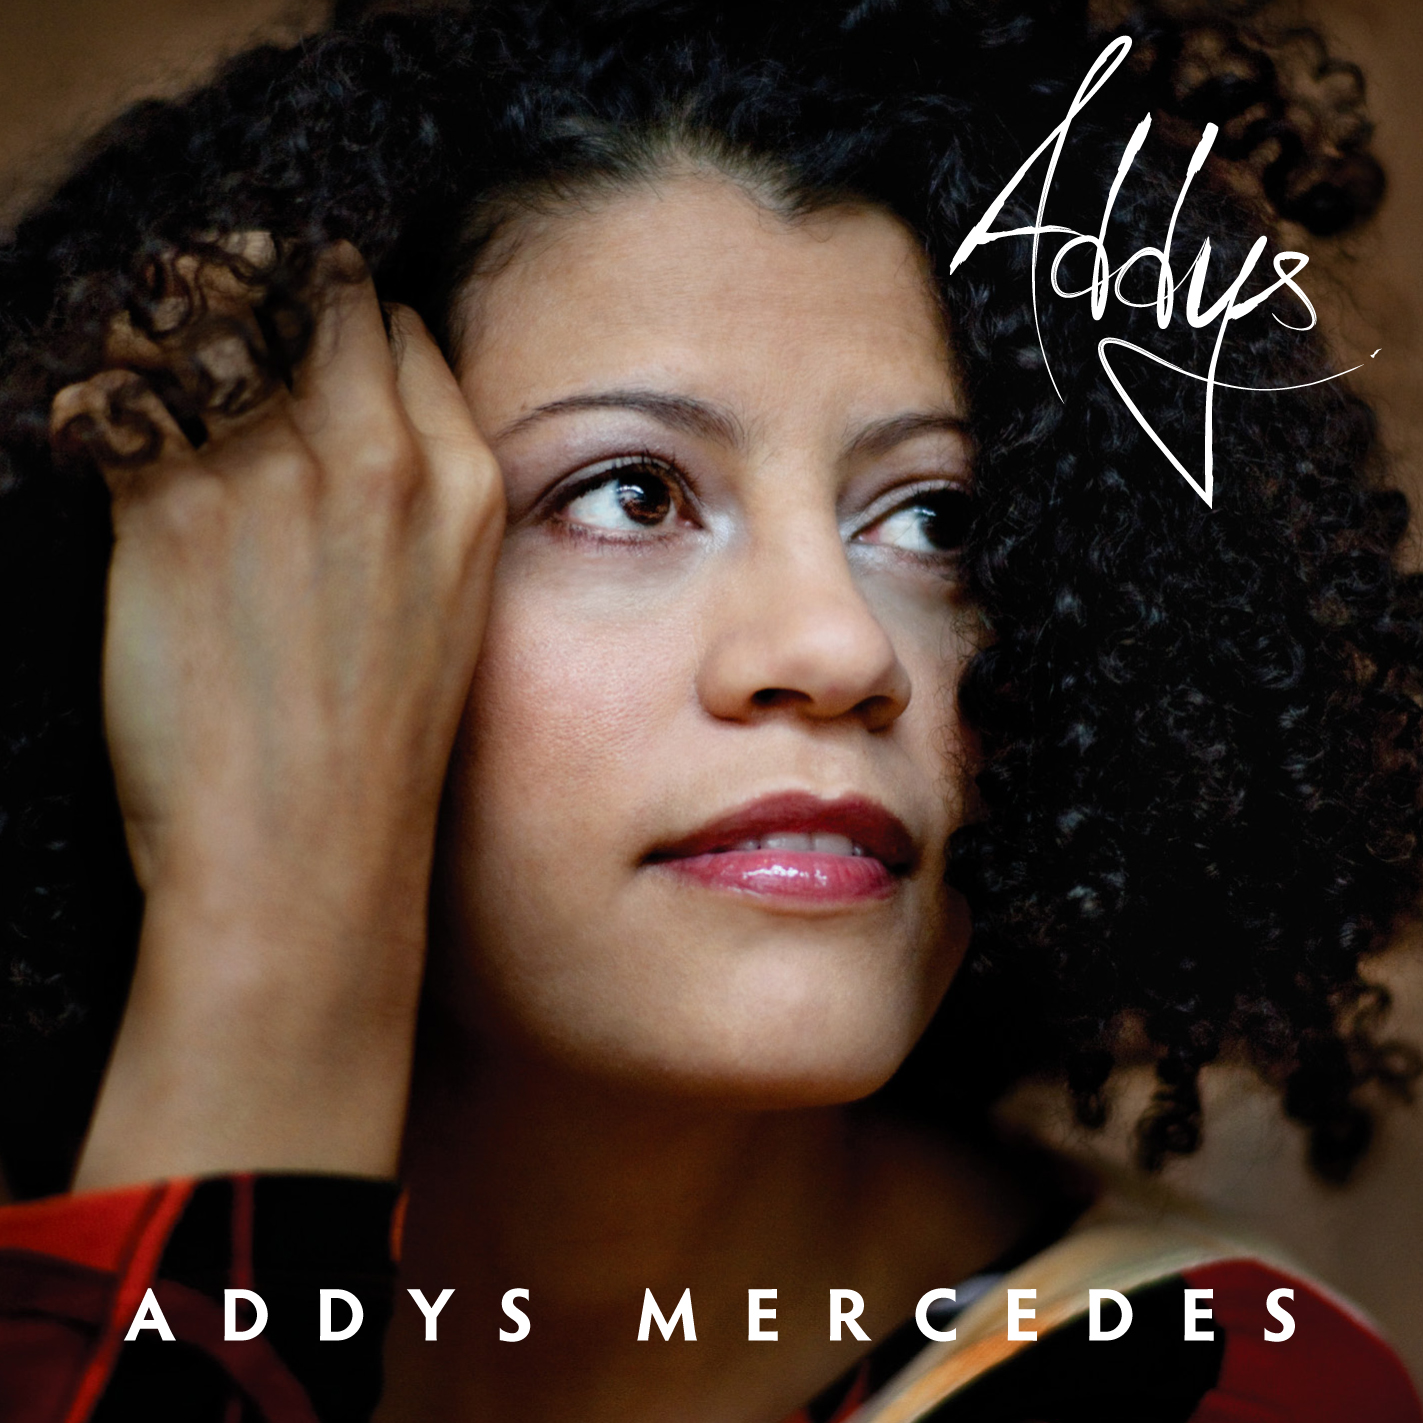 Addys Mercedes - CD Cover - credit: medialuna